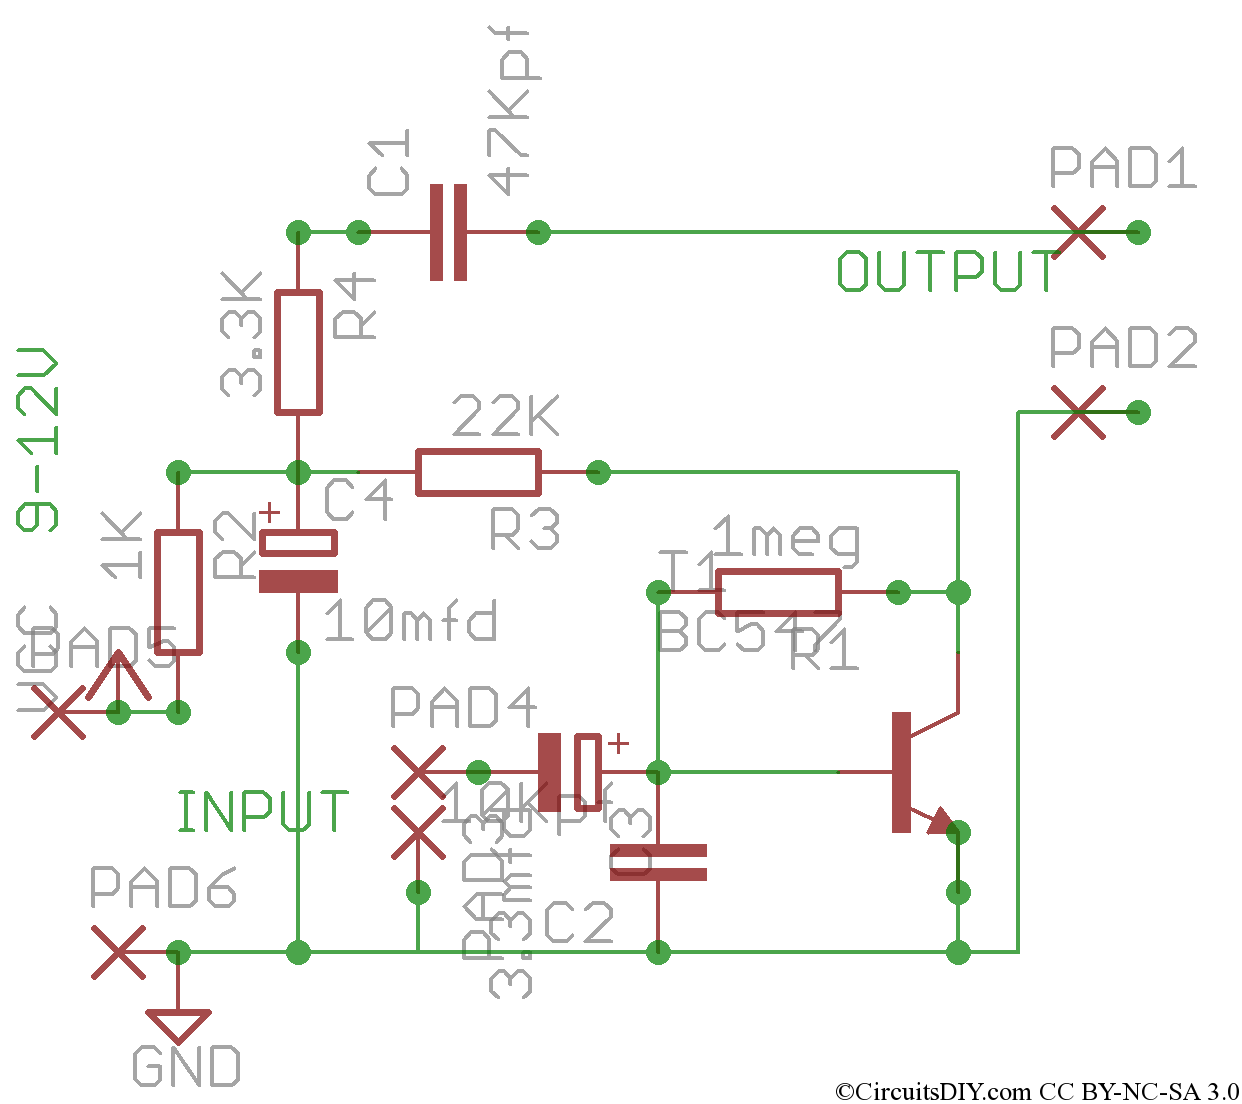 Simple Preamplifier for microphones, tape heads, etc